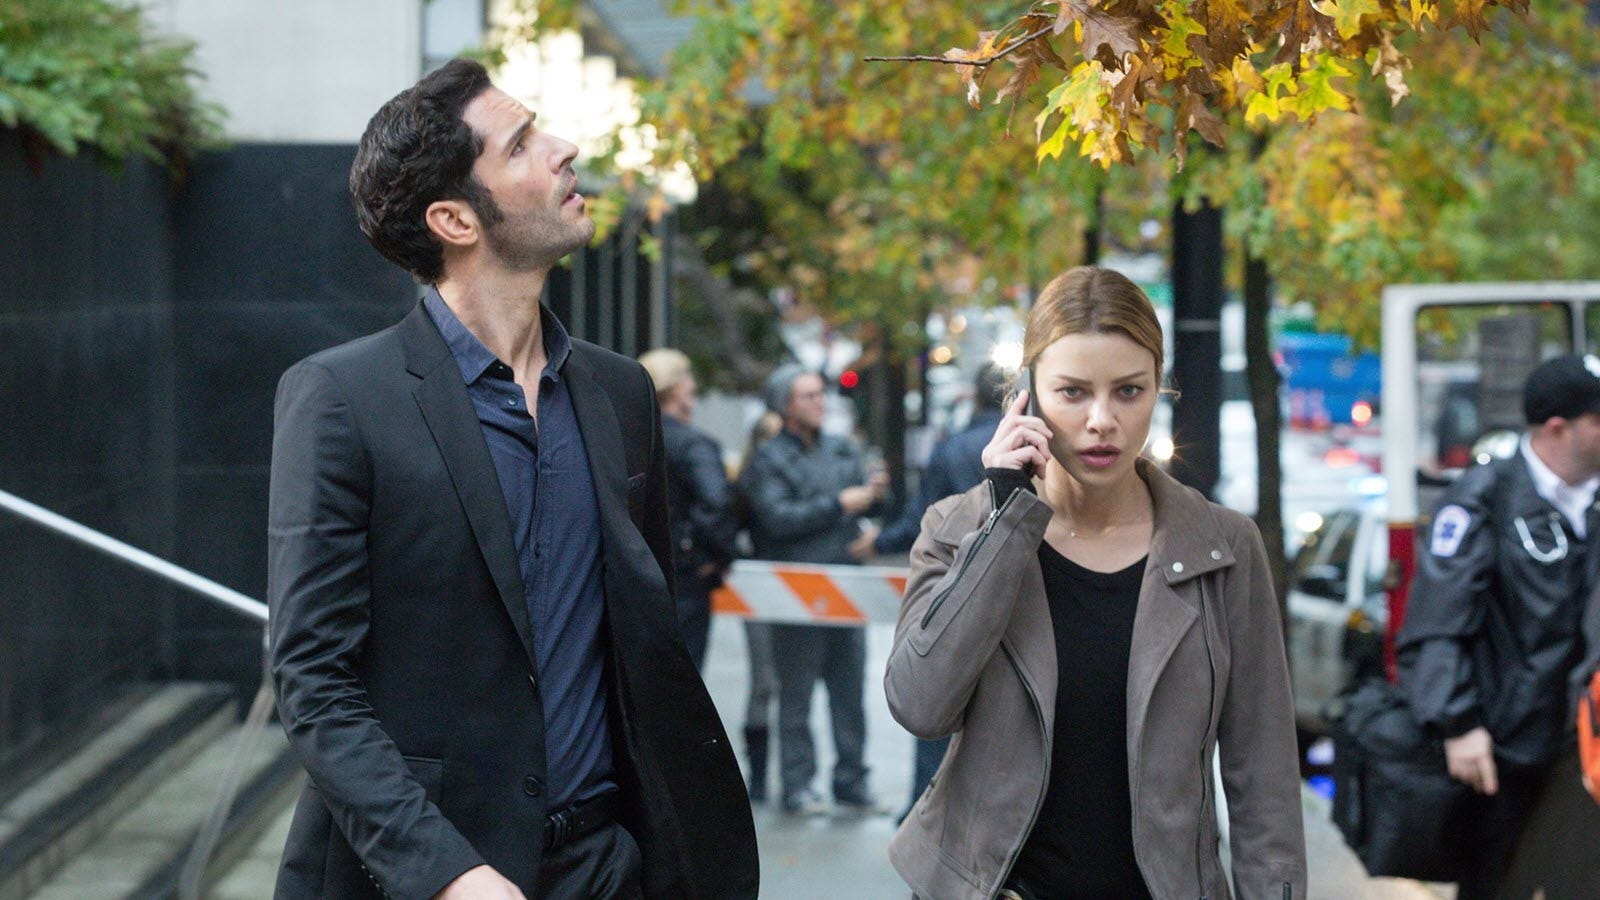 Lucifer and Chloe from the series 'Lucifer' walking down a street.